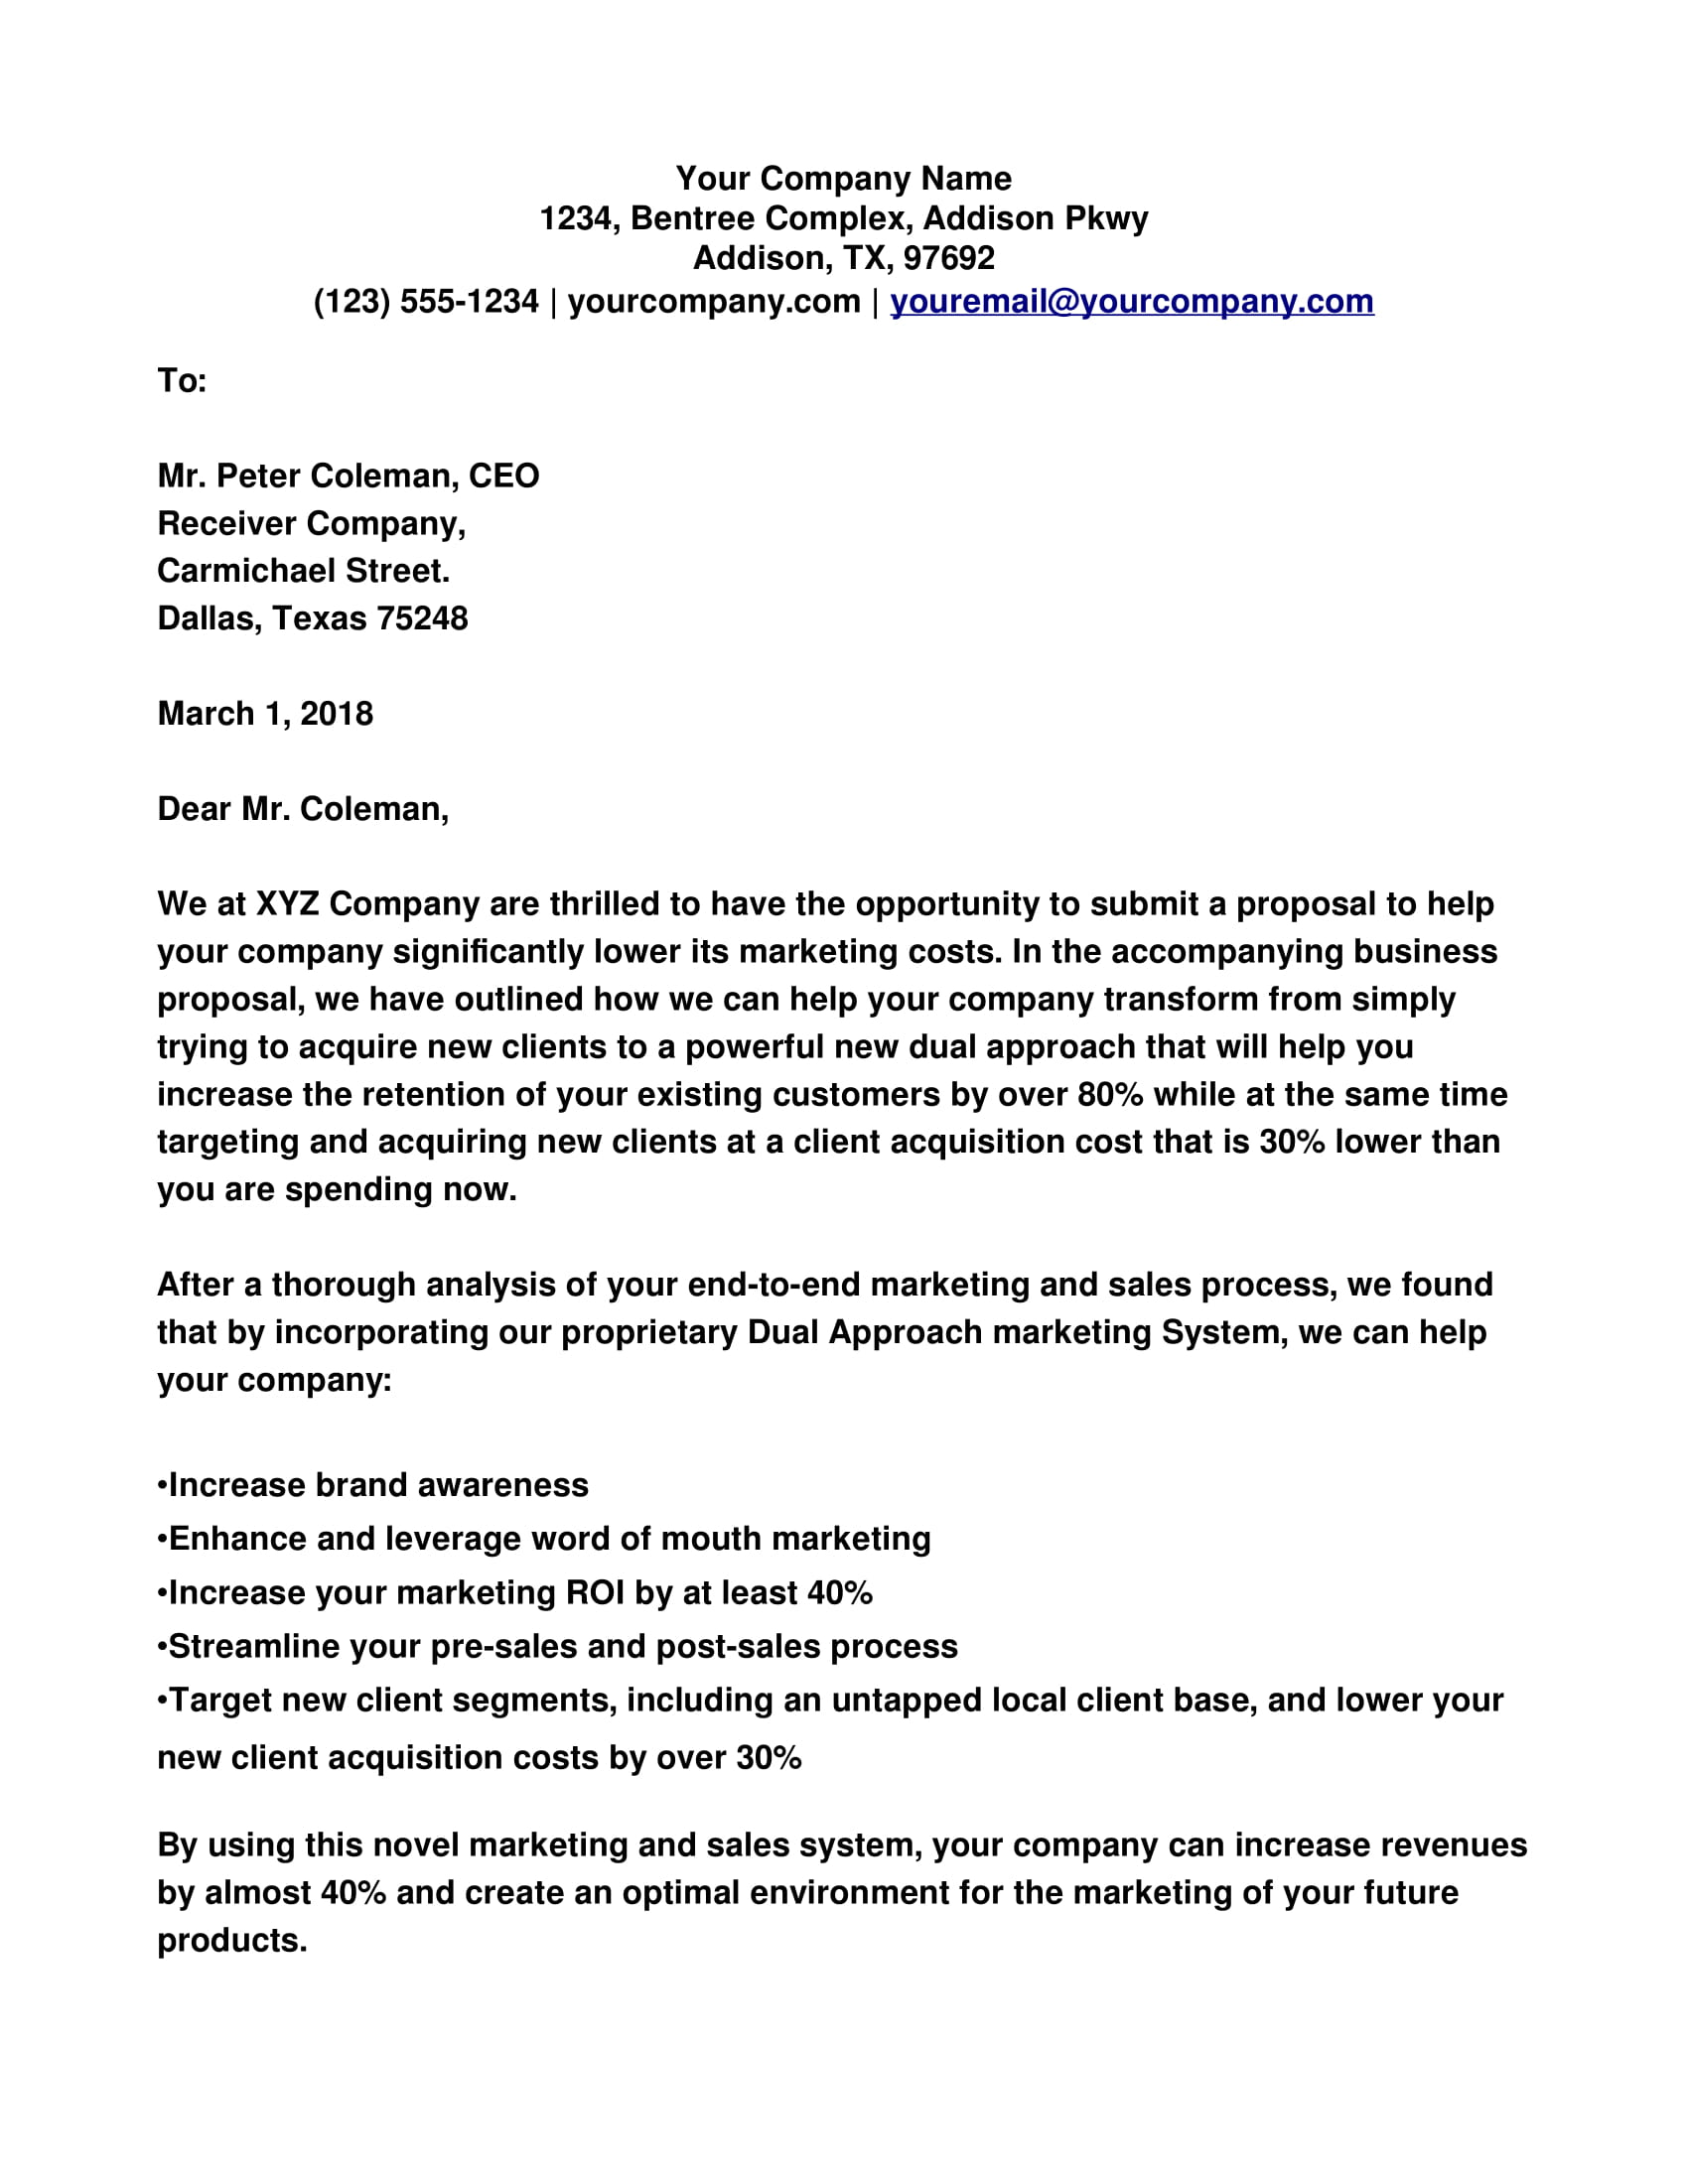 Business Proposal Cover Letter Examples  PDF  Examples